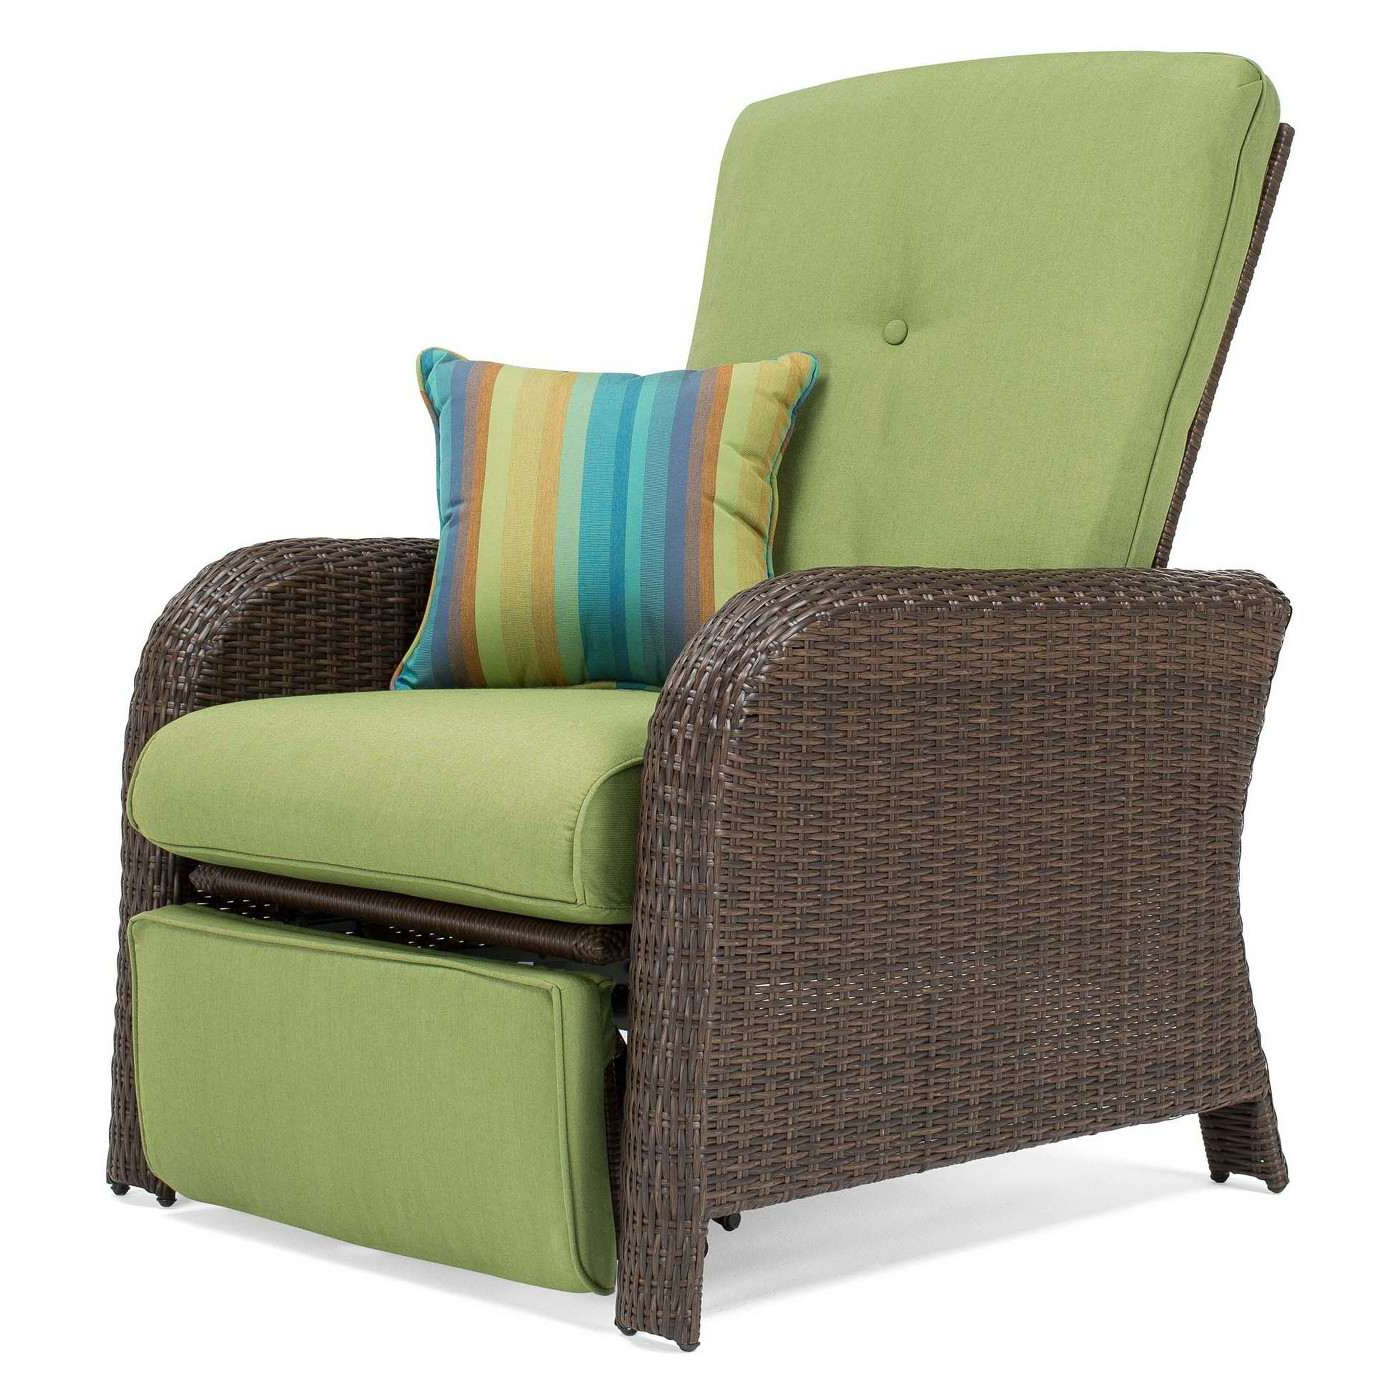 Outdoor Adjustable Rattan Wicker Recliner Chairs With Cushion Inside Most Current The 8 Best Outdoor Recliners Of  (View 11 of 25)